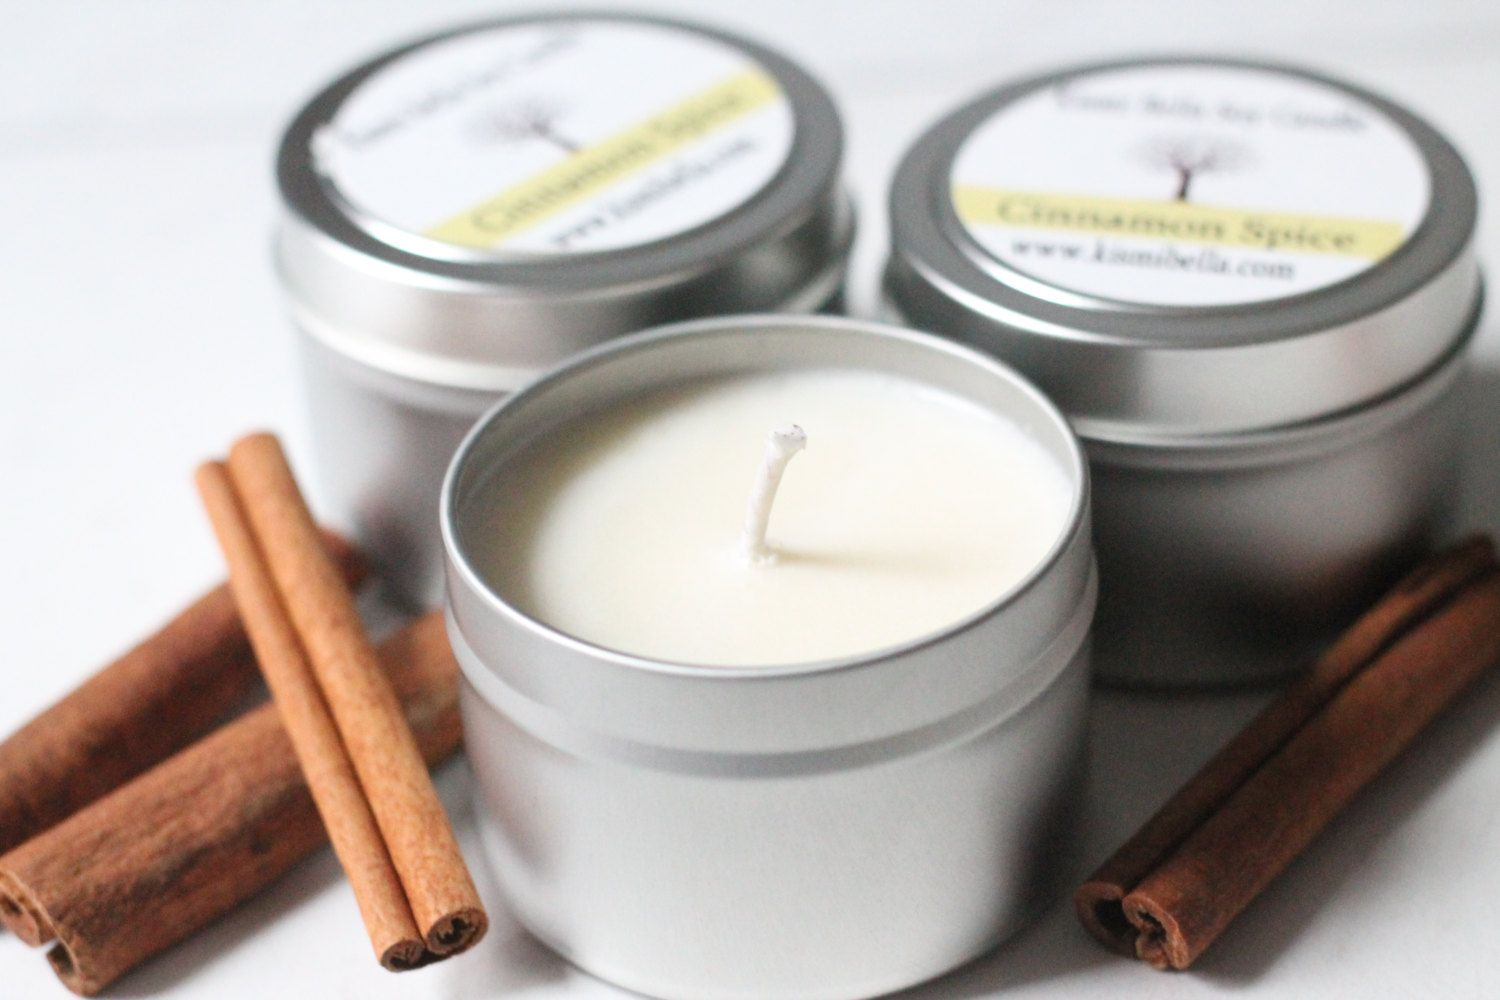 Soy Candle, Travel Candle, Candles Gift , Cinnamon Spice Soy Wax ...